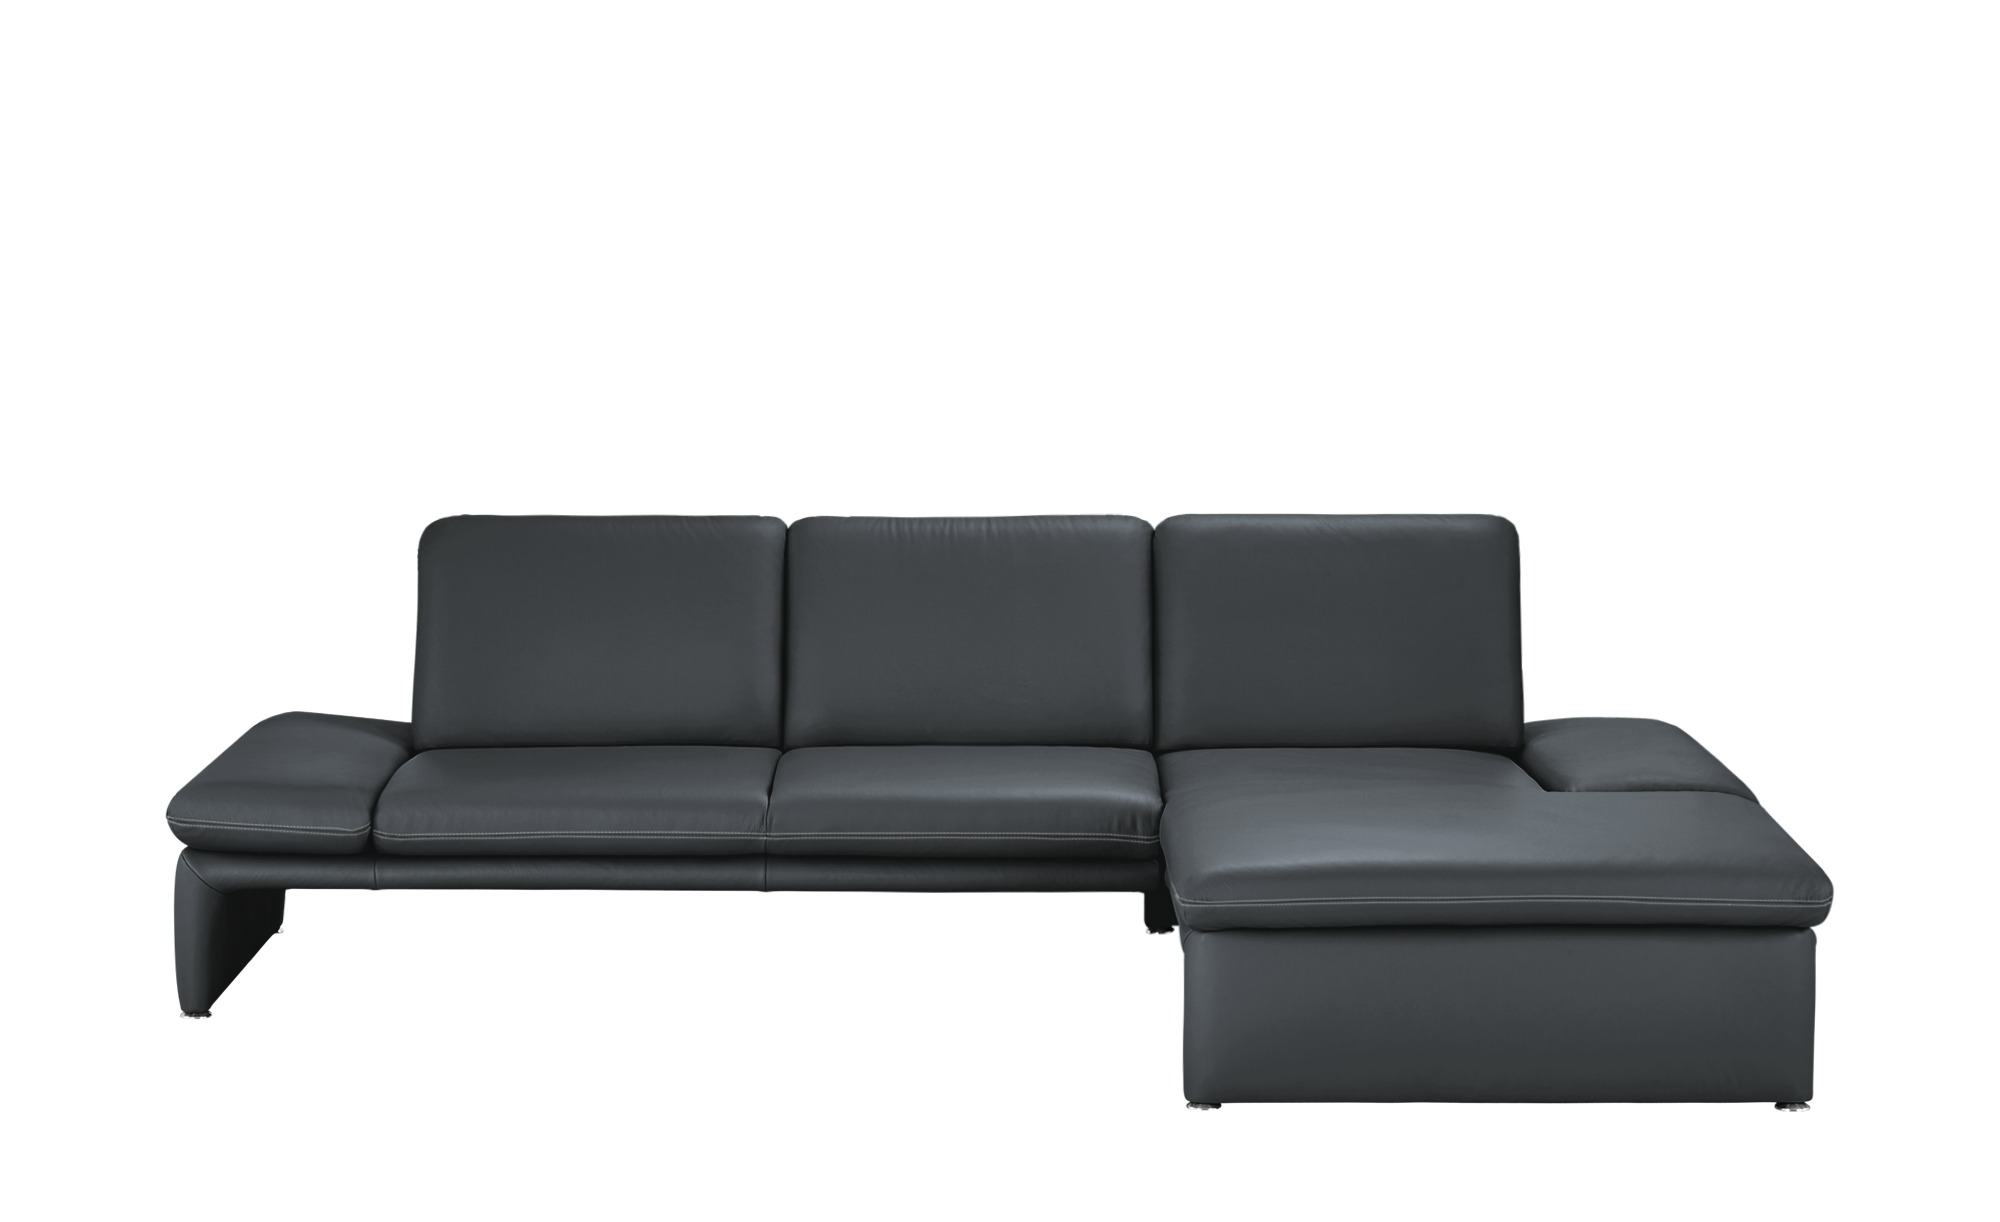 leder ecksofa harbour breite h he 85 cm grau online. Black Bedroom Furniture Sets. Home Design Ideas